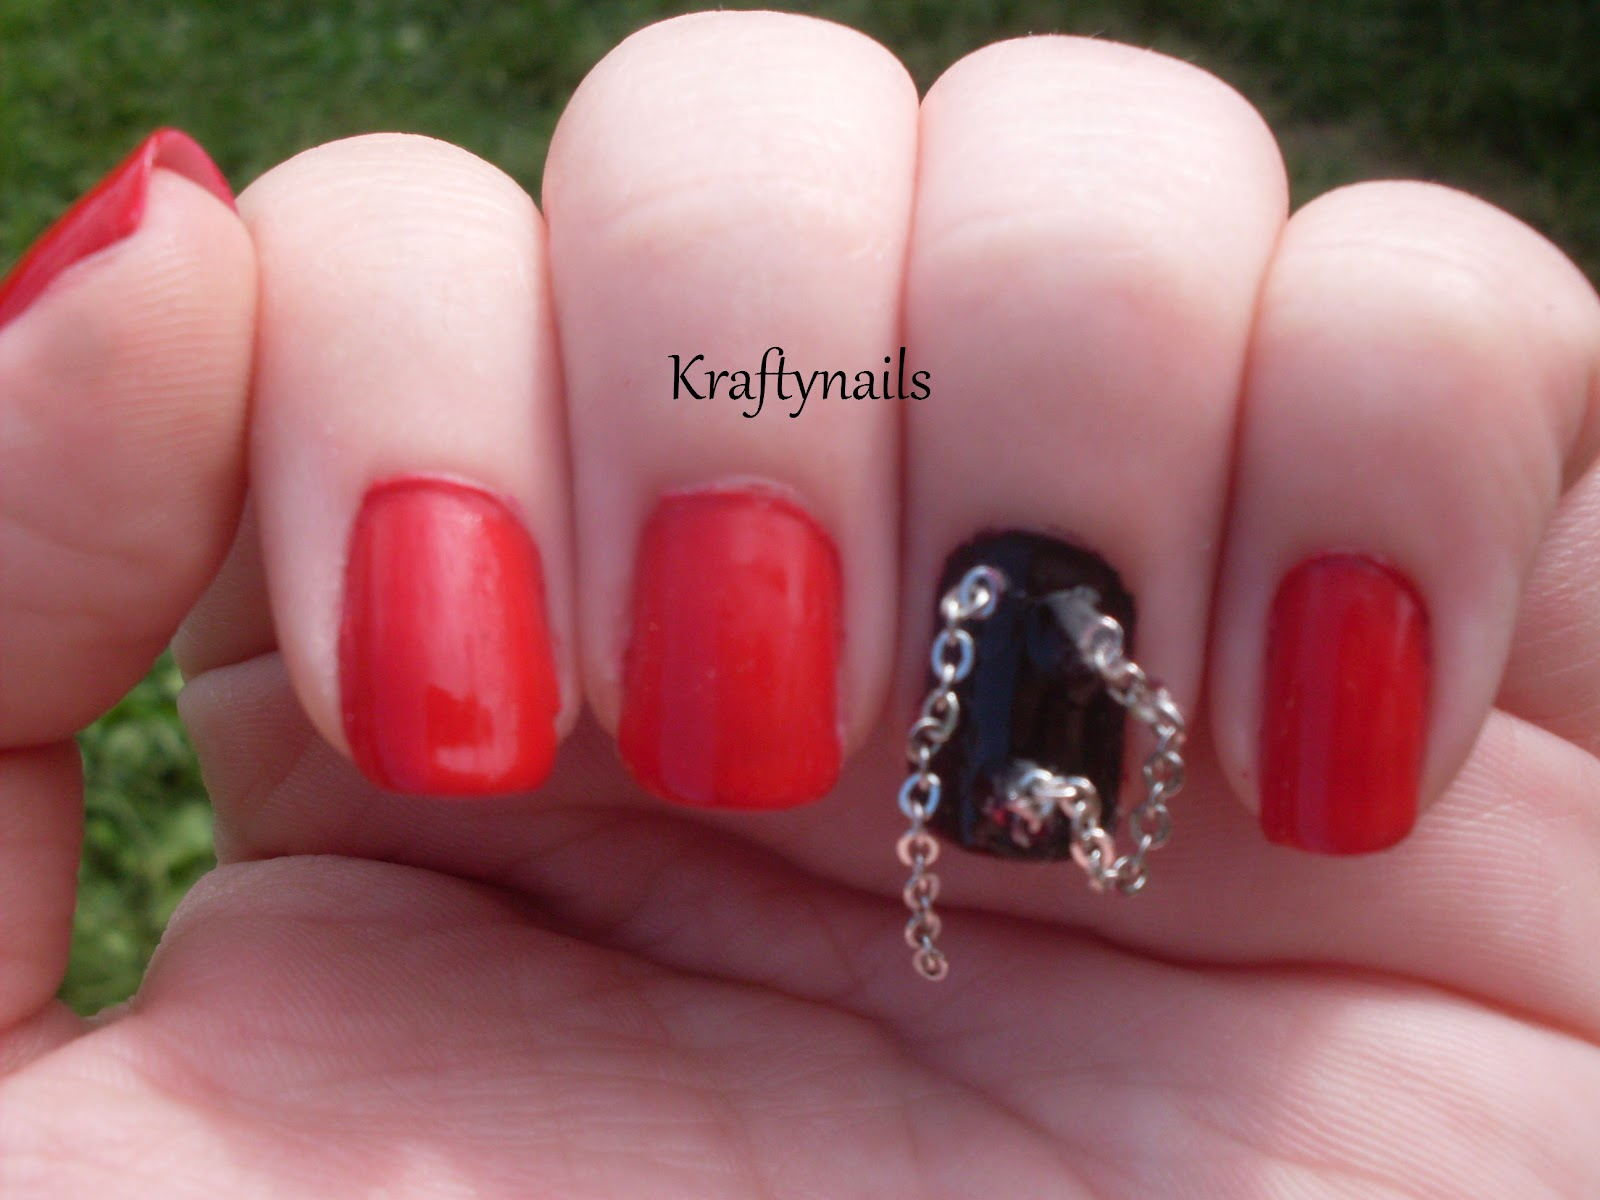 Kraftynails: The Red Room Of Pain